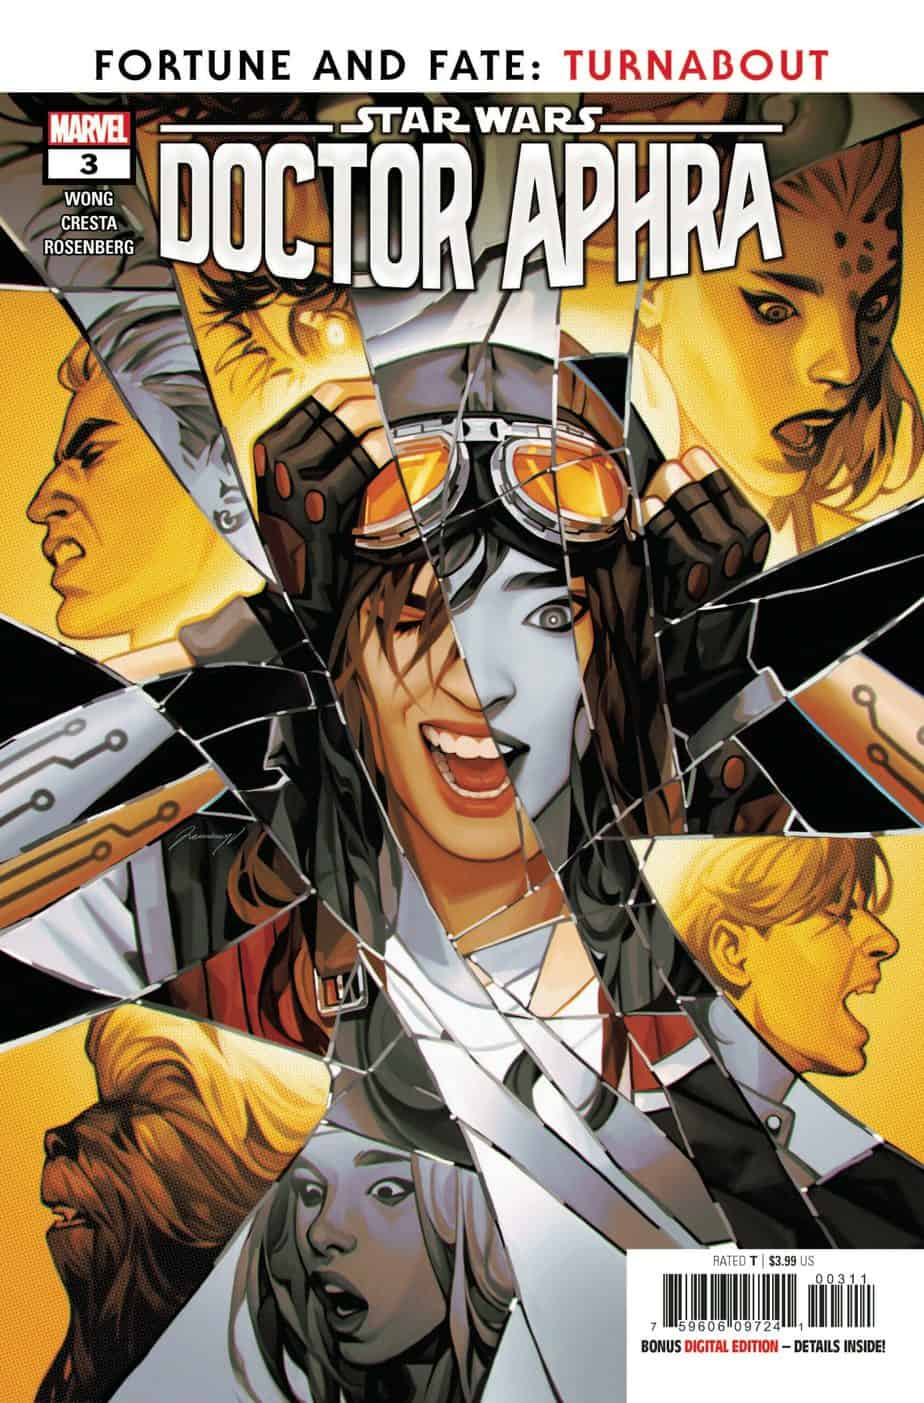 STAR WARS: Doctor Aphra #3 - Cover A